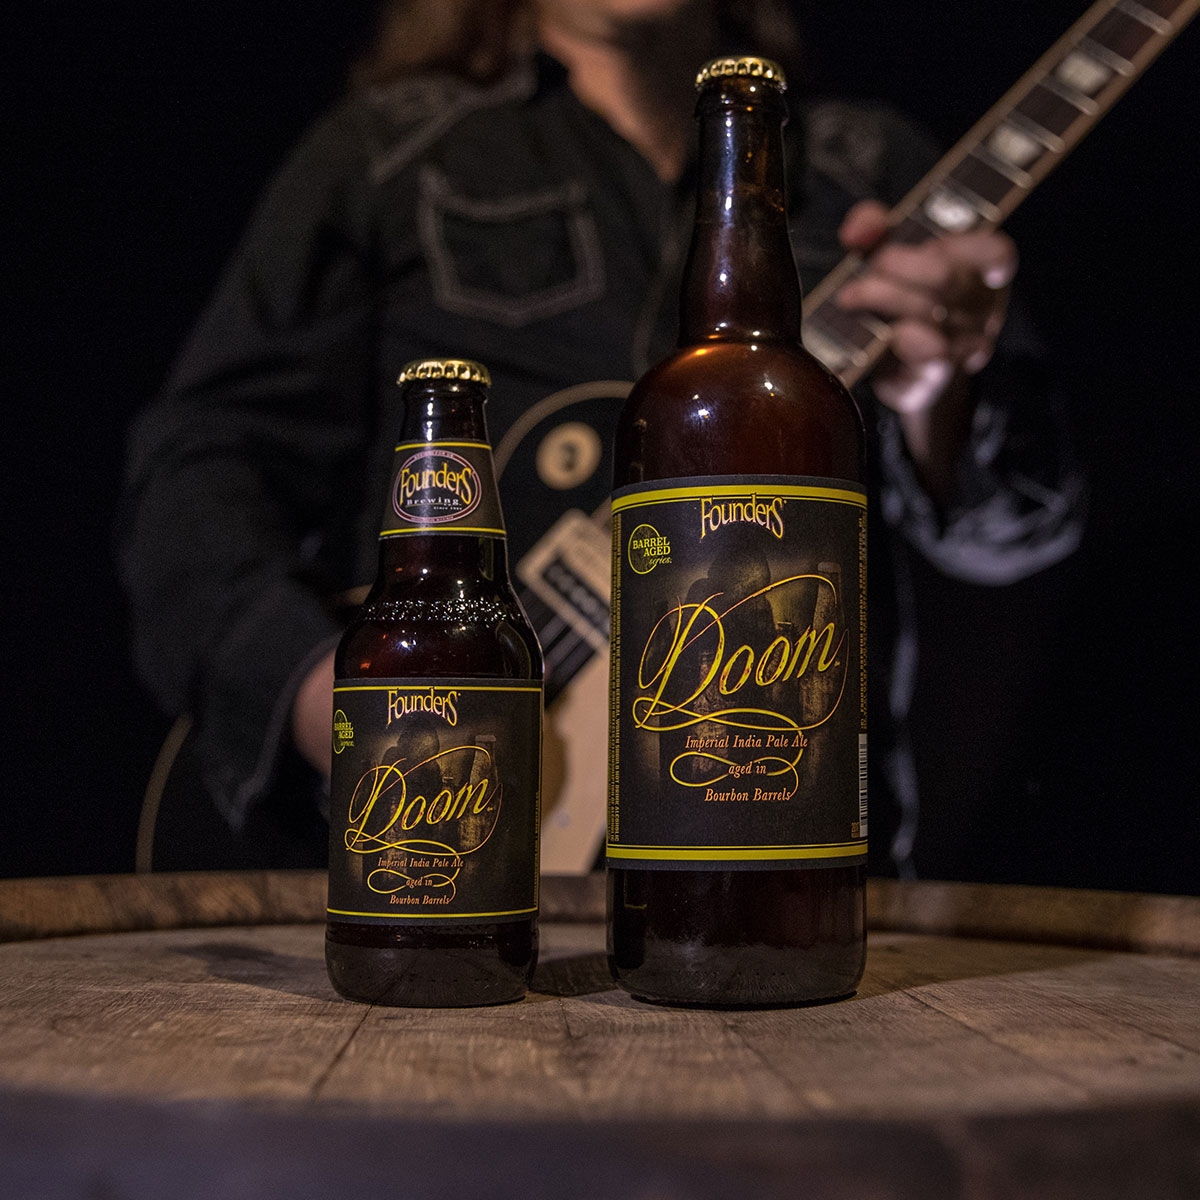 Two different sized bottles of Founders Doom sitting on beer barrel with guitar player in the background